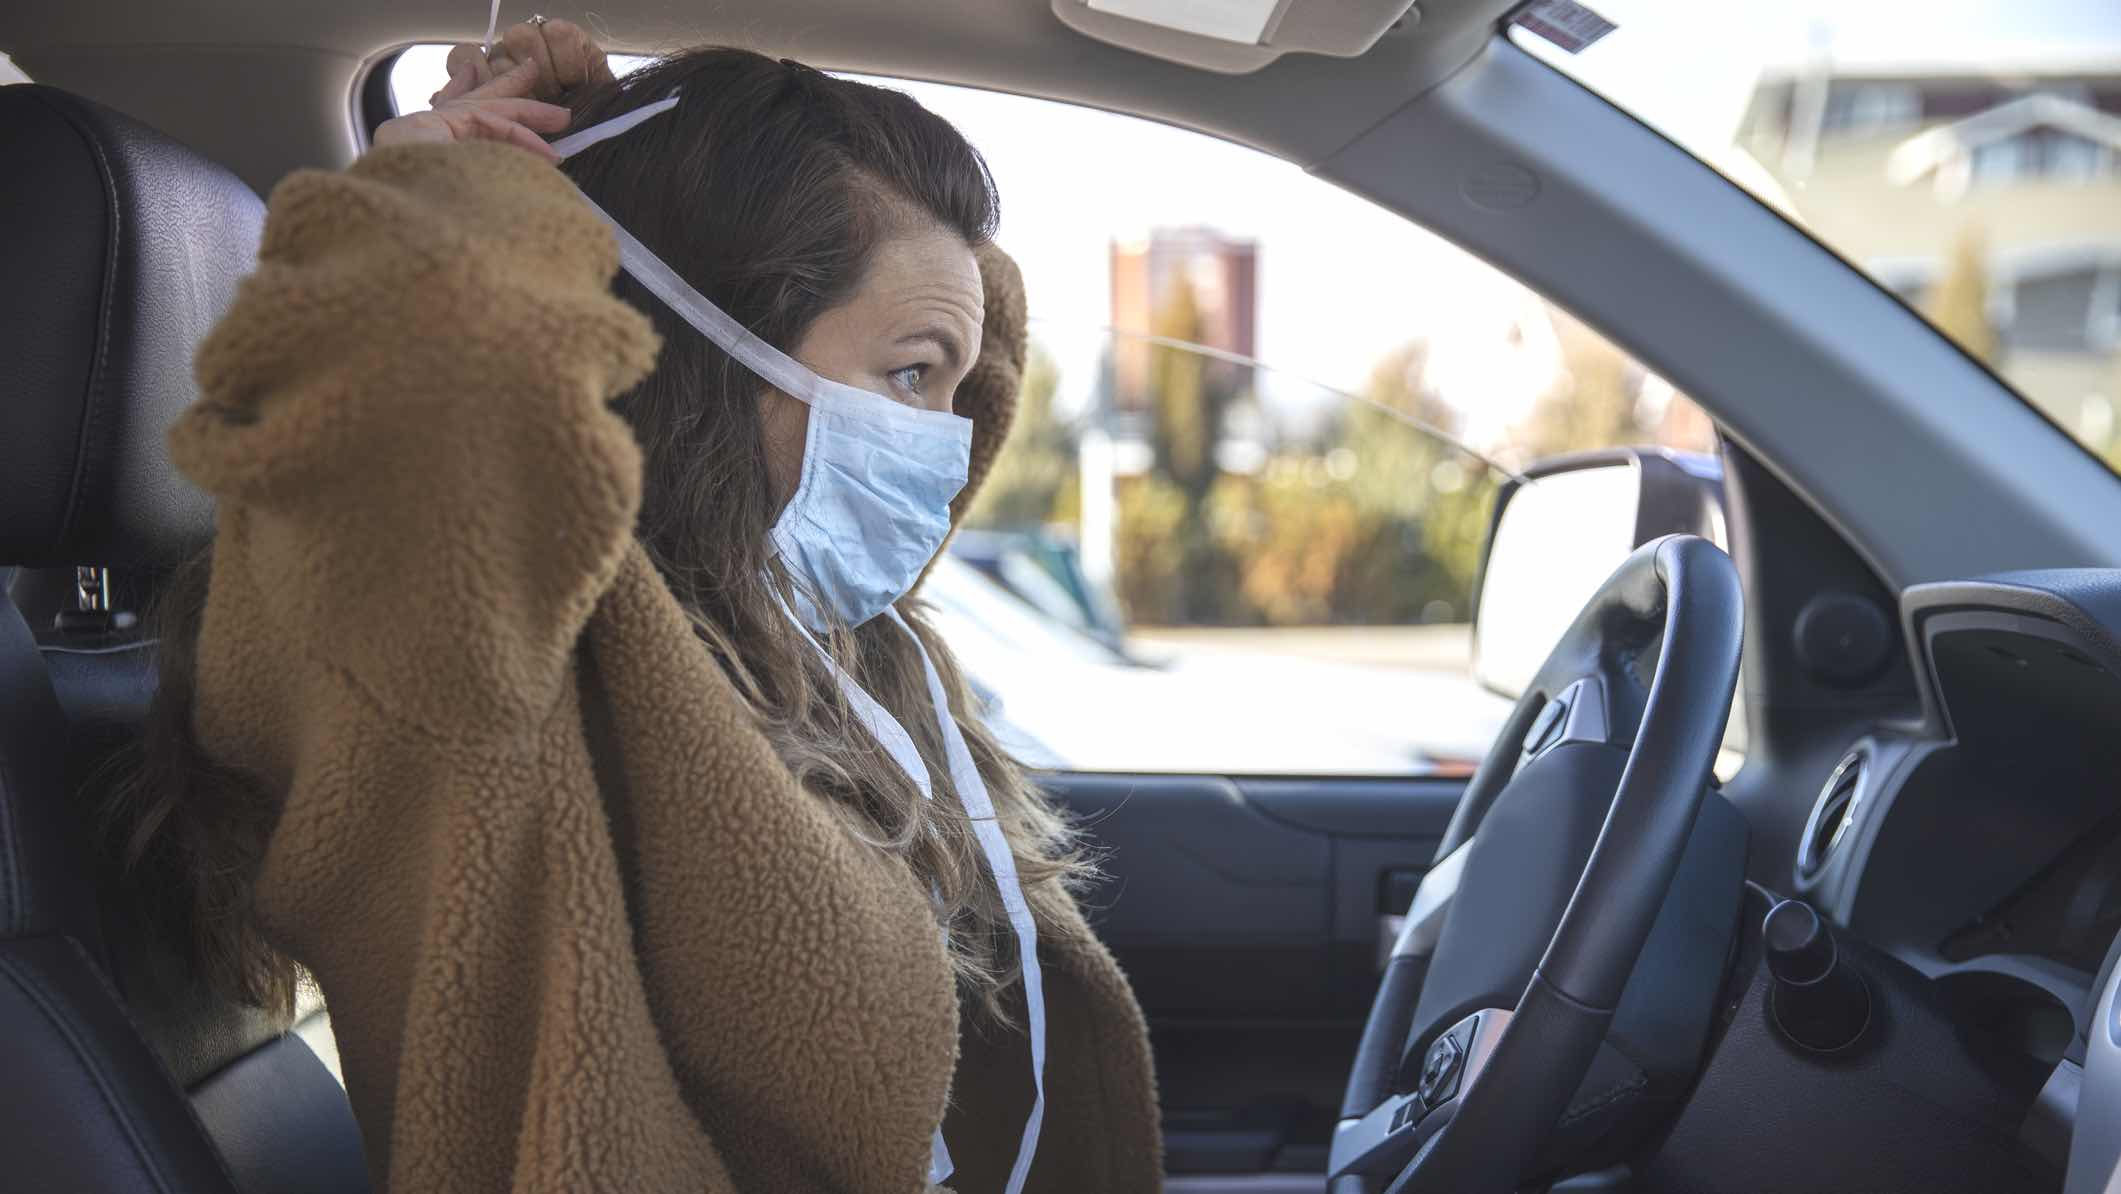 Driver wearing a face mask during COVID-19